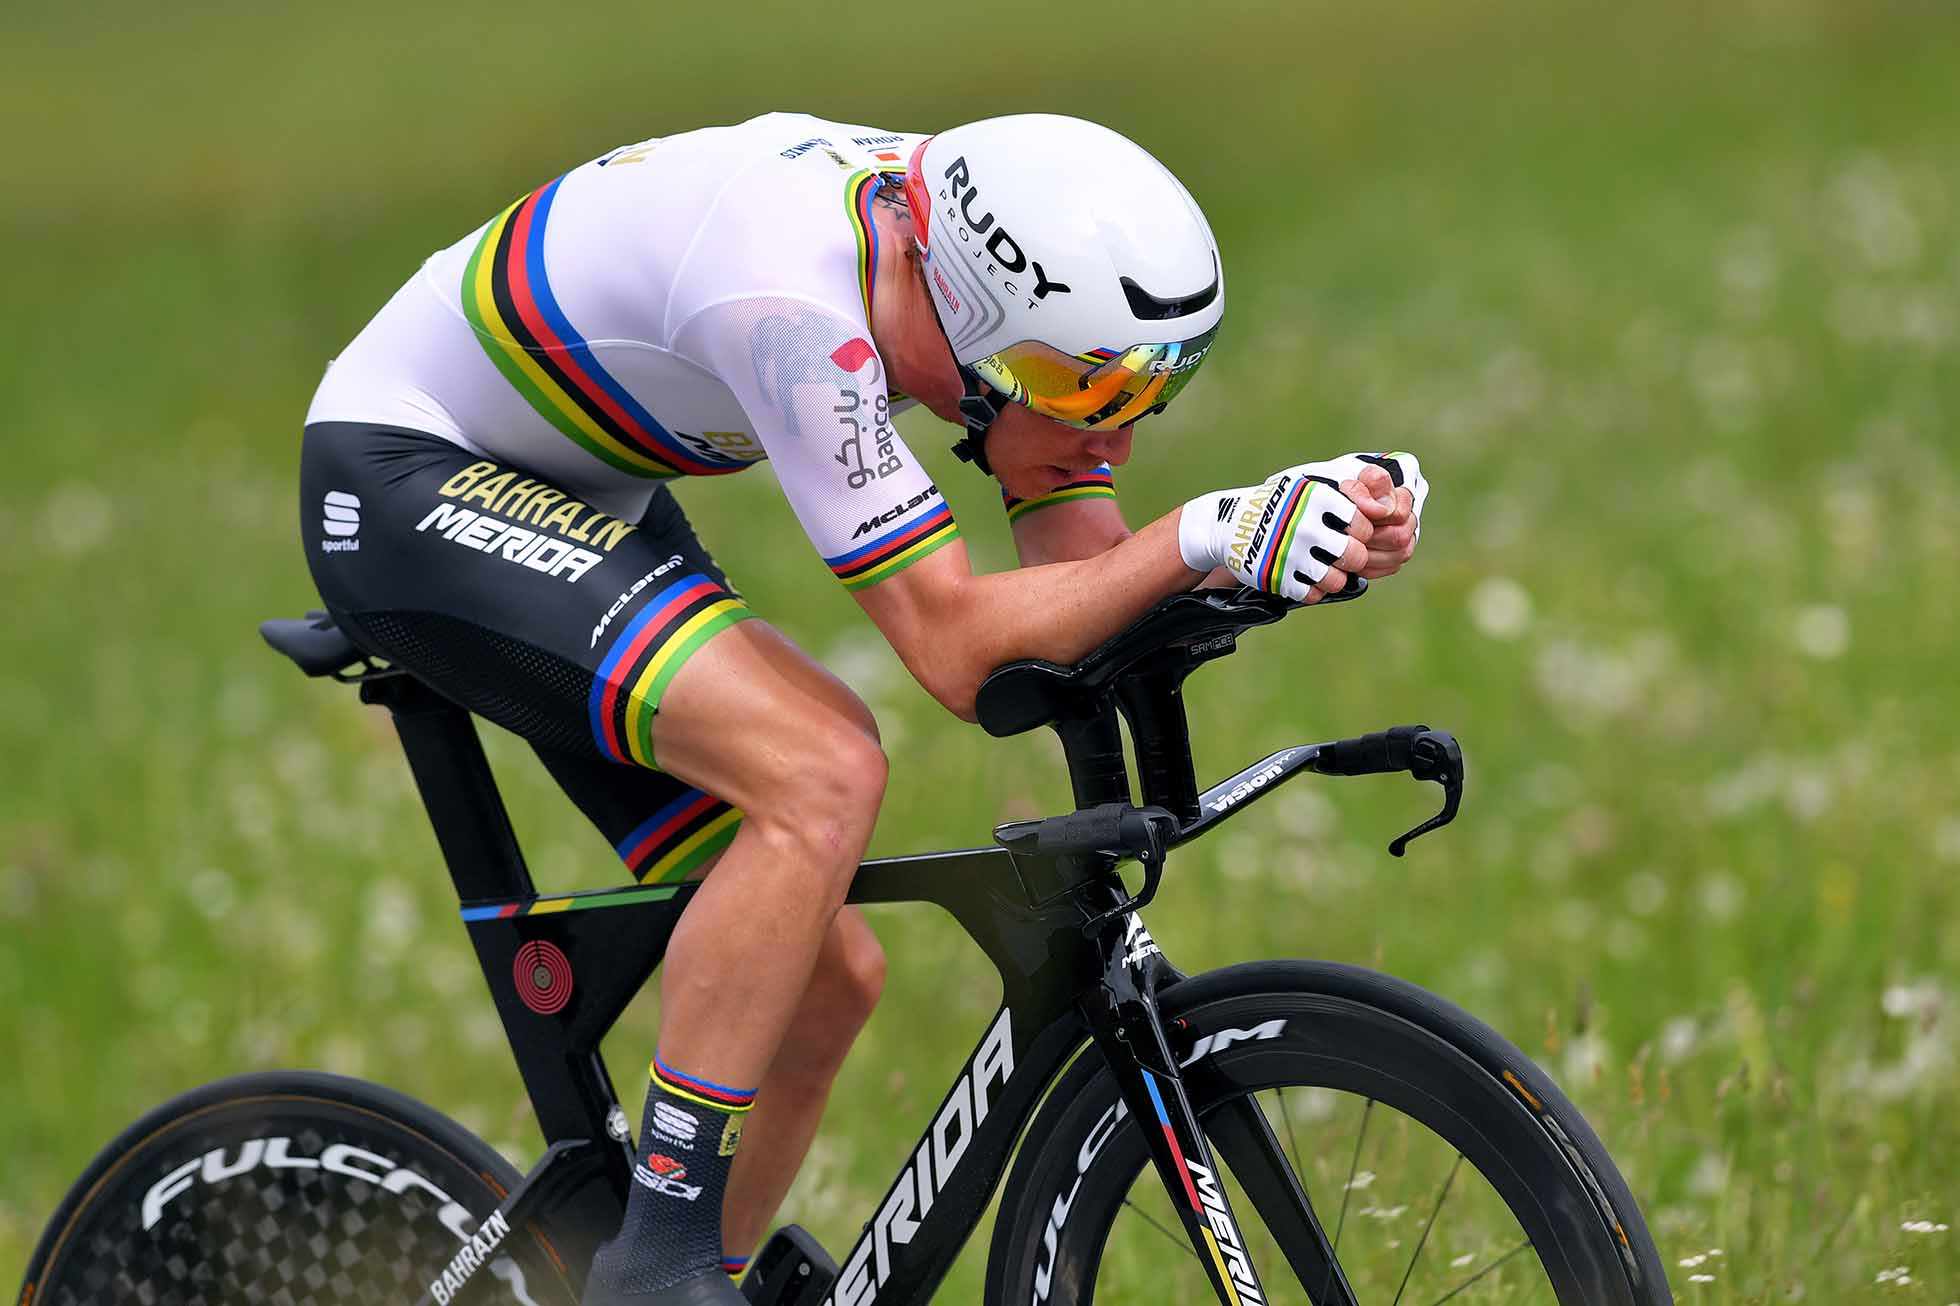 ULTRICHEN, SWITZERLAND - JUNE 22: Rohan Dennis of Australia and Team Bahrain - Merida / during the 83rd Tour of Switzerland, Stage 8 a 19,2km Individual Time Trial stage from Ulrichen-Goms to Ulrichen-Goms / ITT / TDS / @tds / #tourdesuisse / on June 22, 2019 in Ulrichen, Switzerland. (Photo by Tim de Waele/Getty Images)